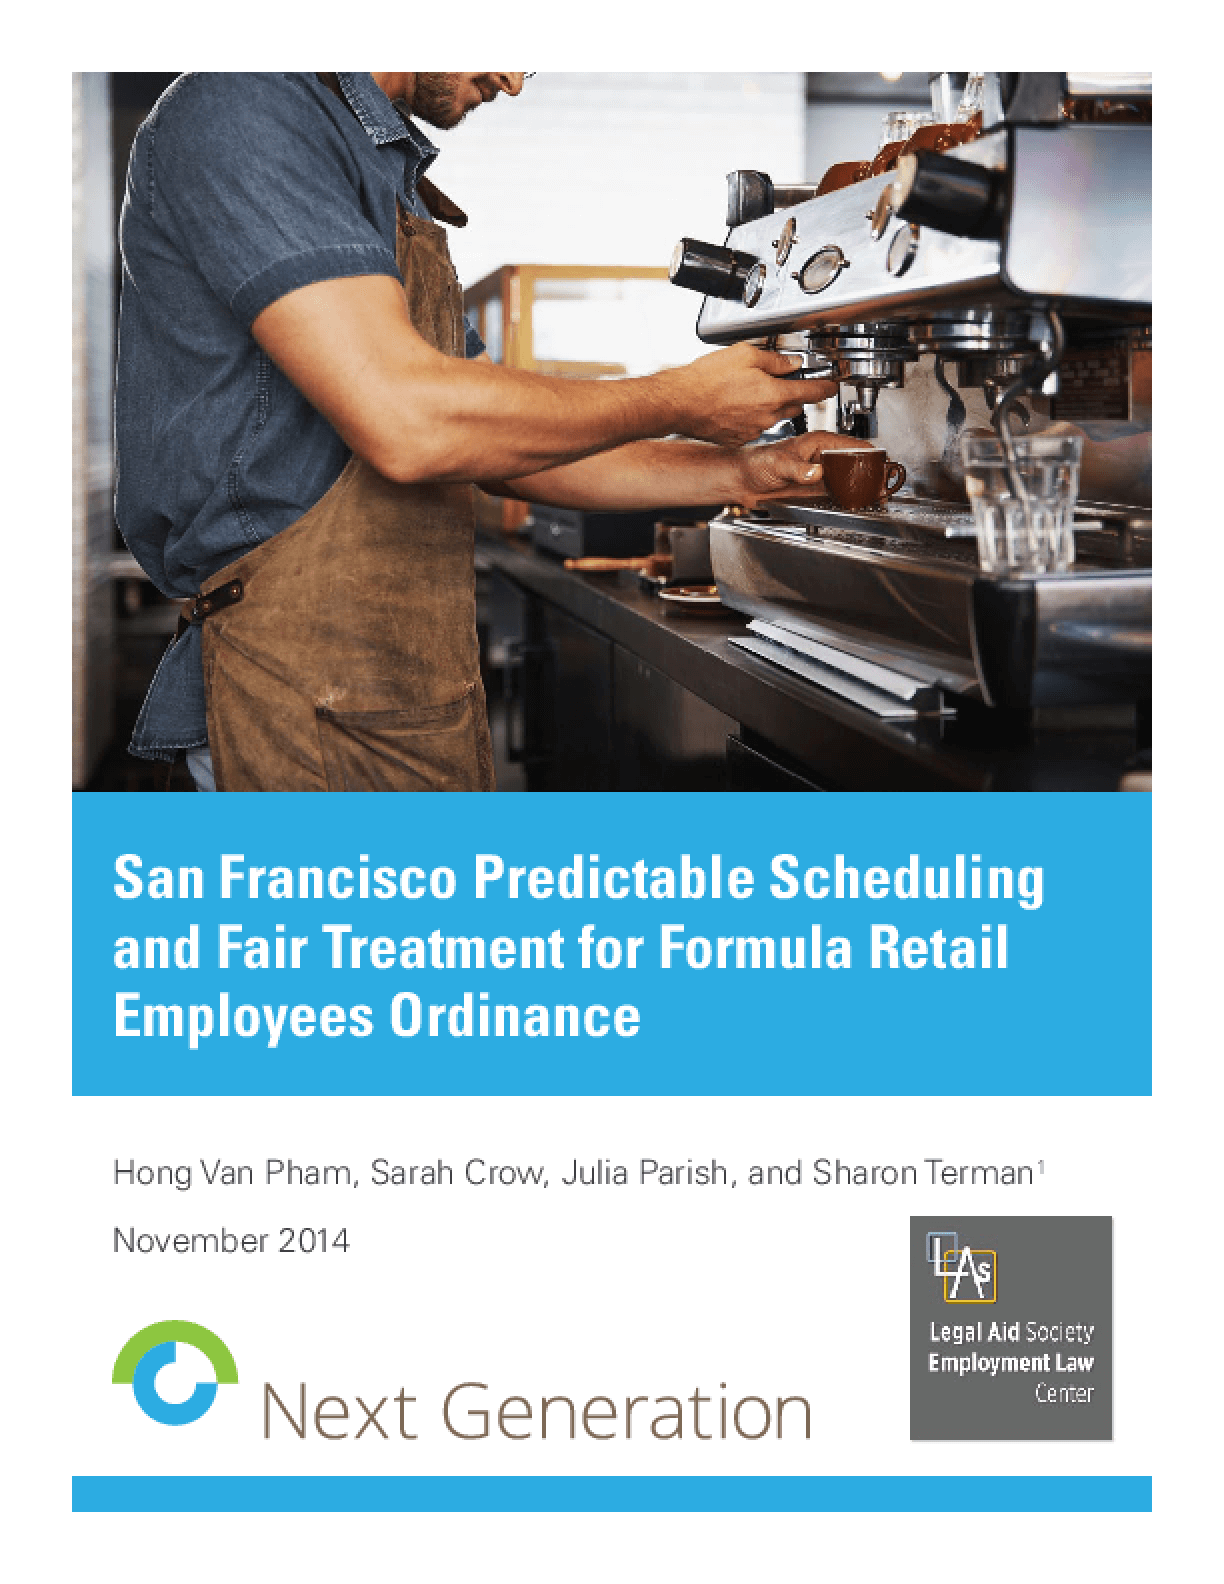 San Francisco Predictable Scheduling and Fair Treatment for Formula Retail Employees Ordinance